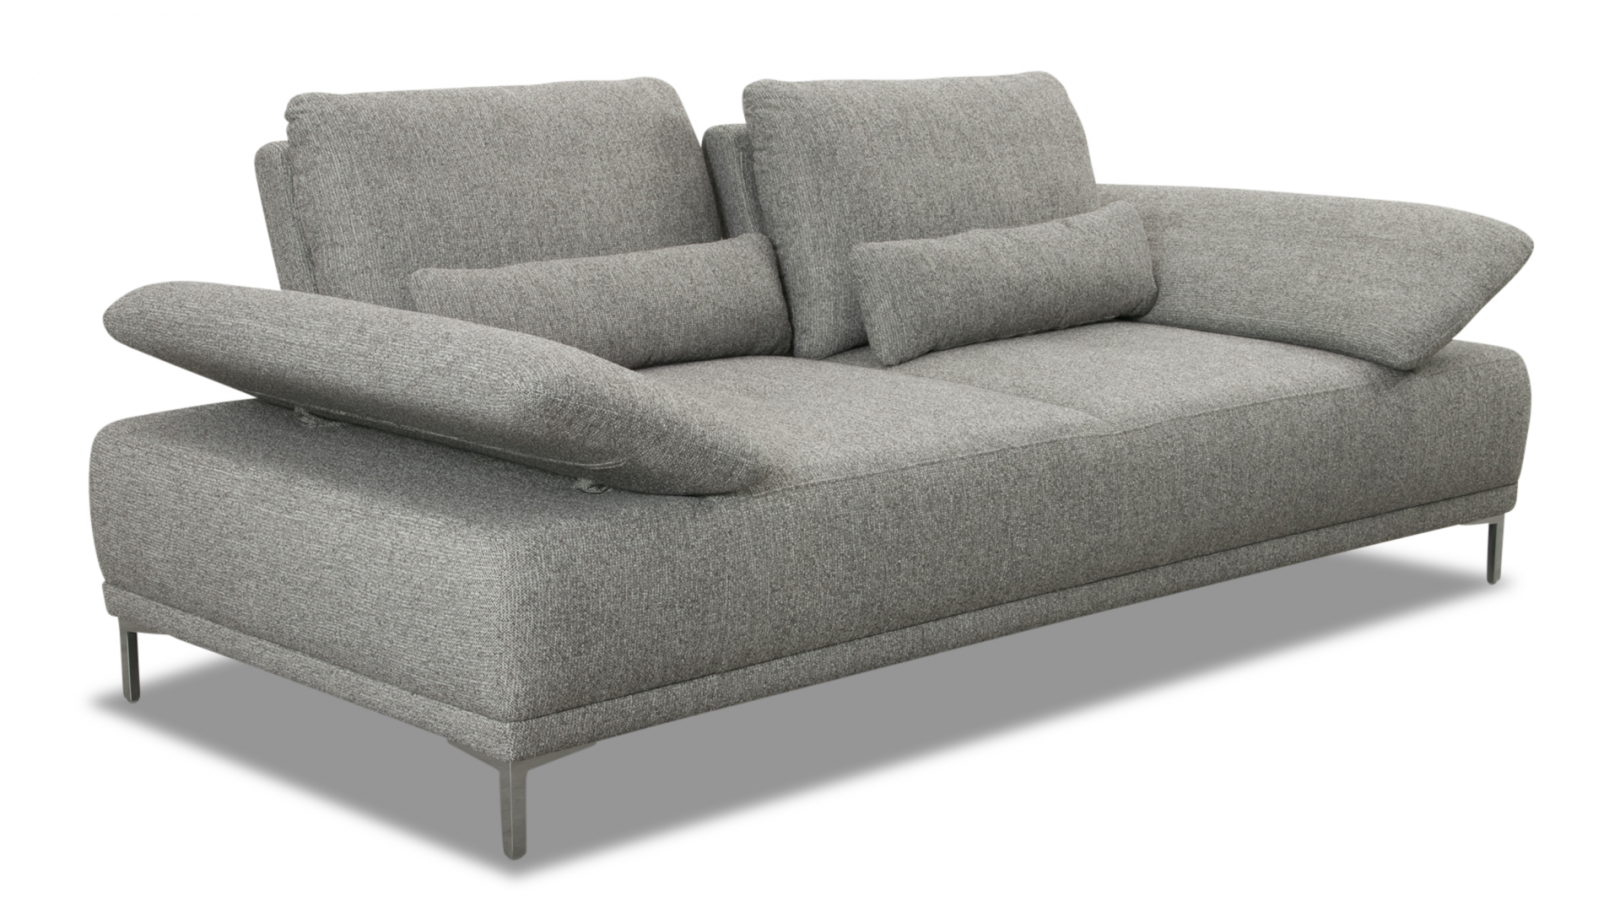 Willi Schillig Sofa 16555 Run Variante In Stoff S22 Steel In 2020